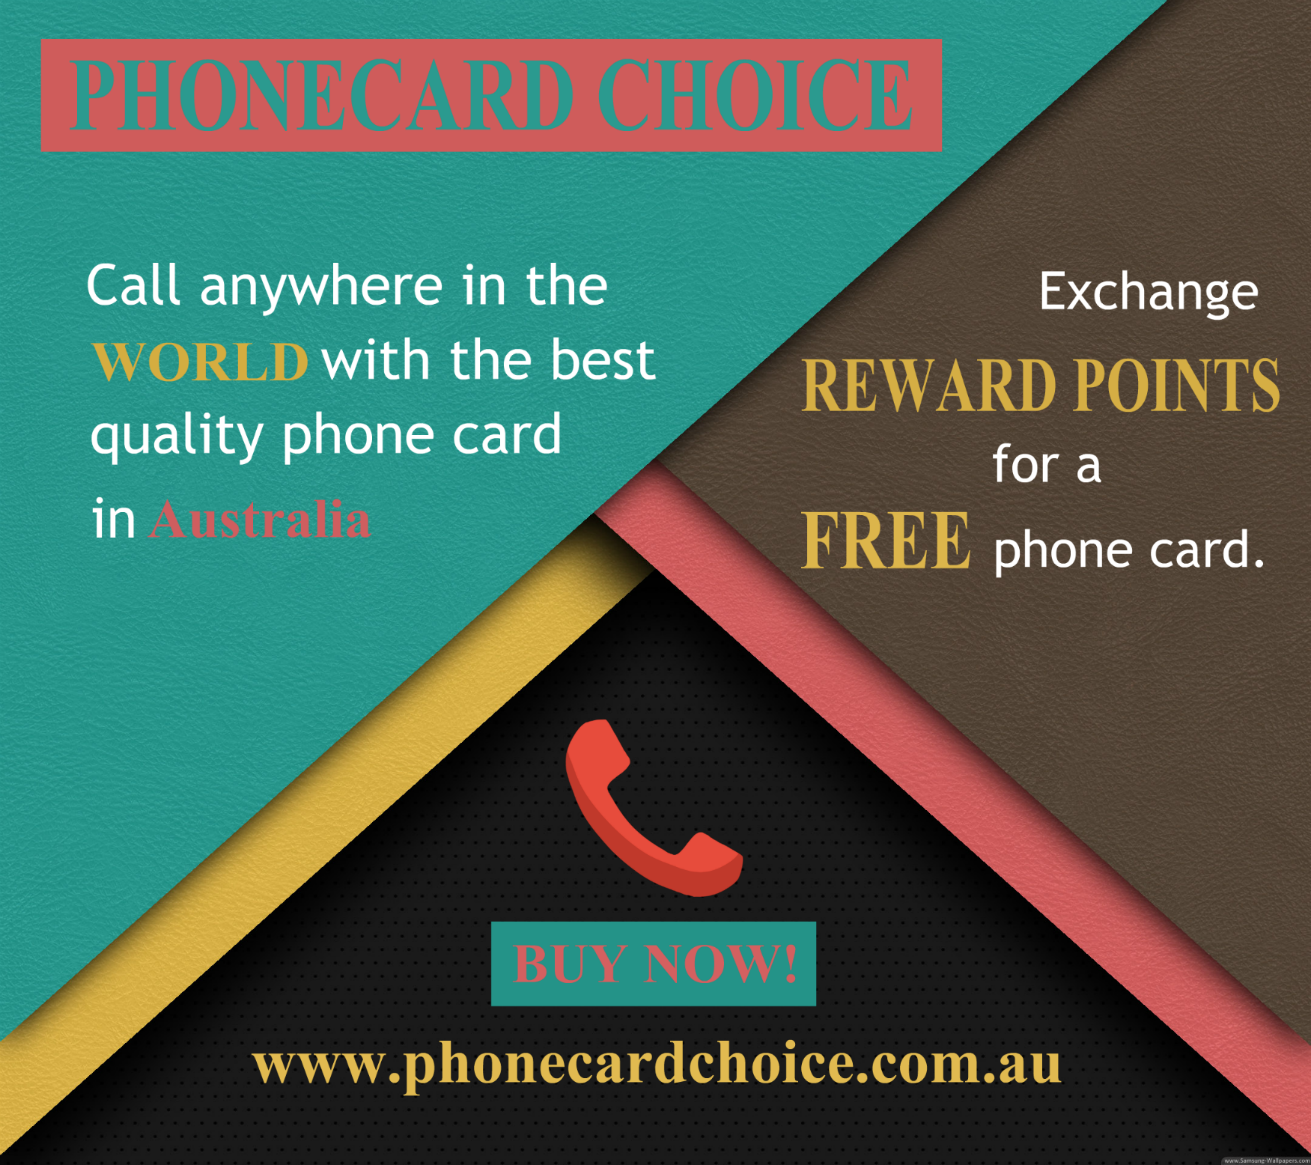 ways to find the best calling card for international calls - Best International Calling Cards